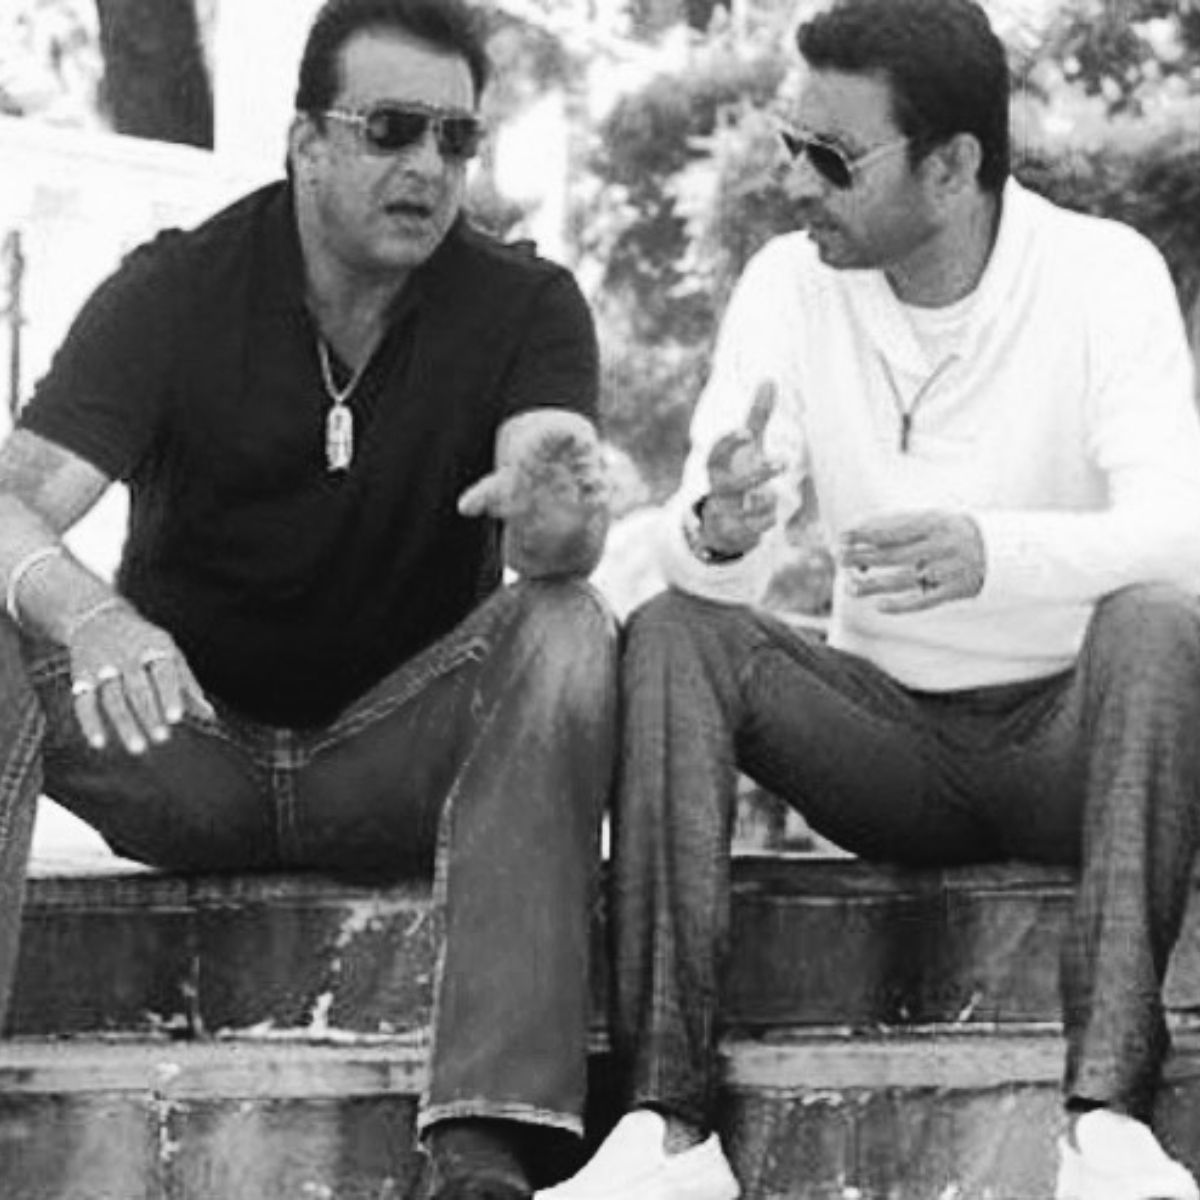 Irrfan Khan S Son Babil Reveals Sanjay Dutt Was One Of The First People To Offer Help When His Dad Passed Away In 2020 Irrfan Khan Dads Passed Away